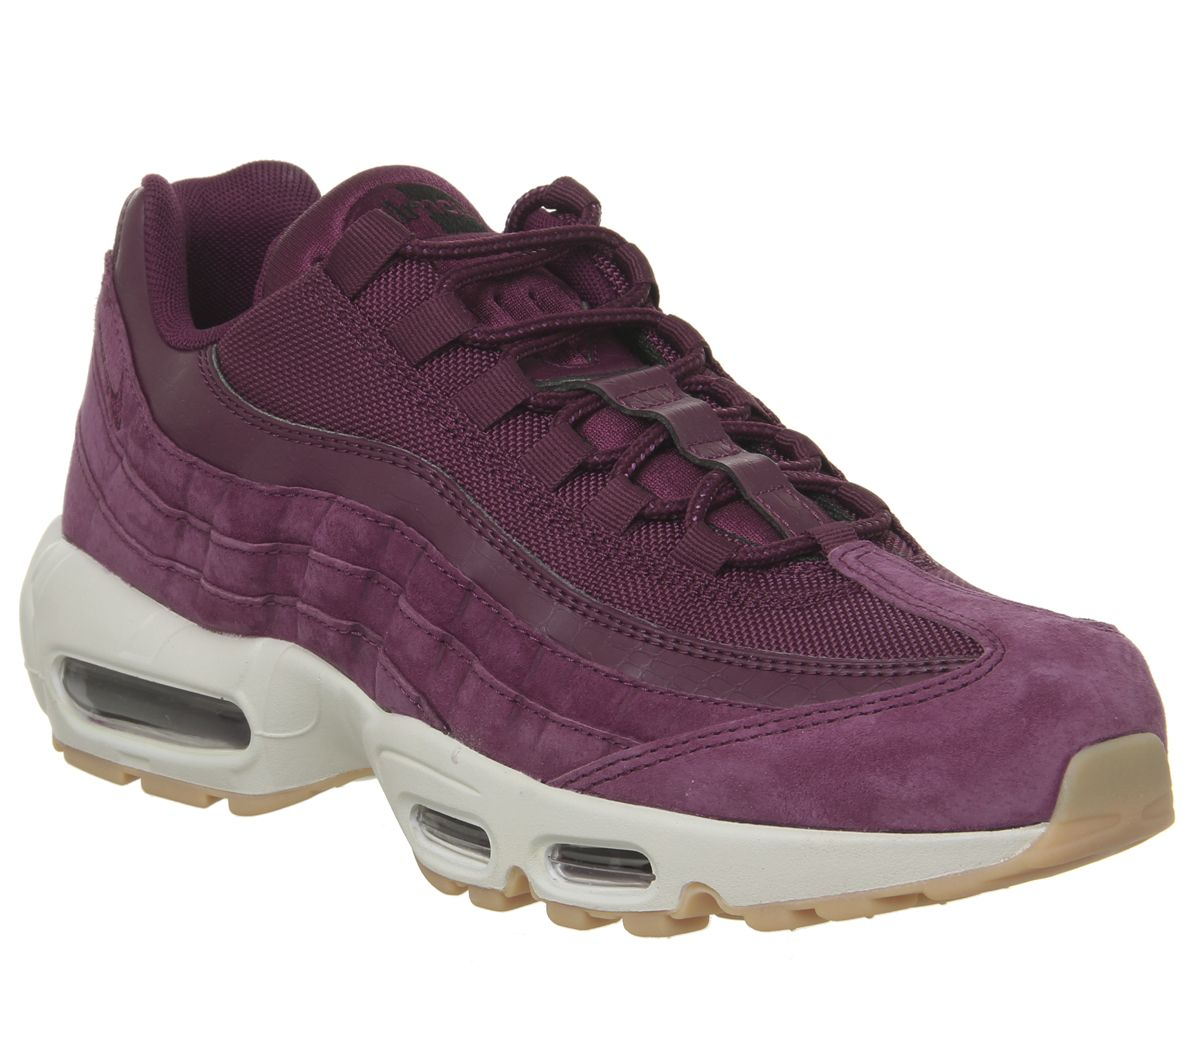 514b36cd1f Nike Air Max 95 Trainers Bordeaux Desert Sand - His trainers